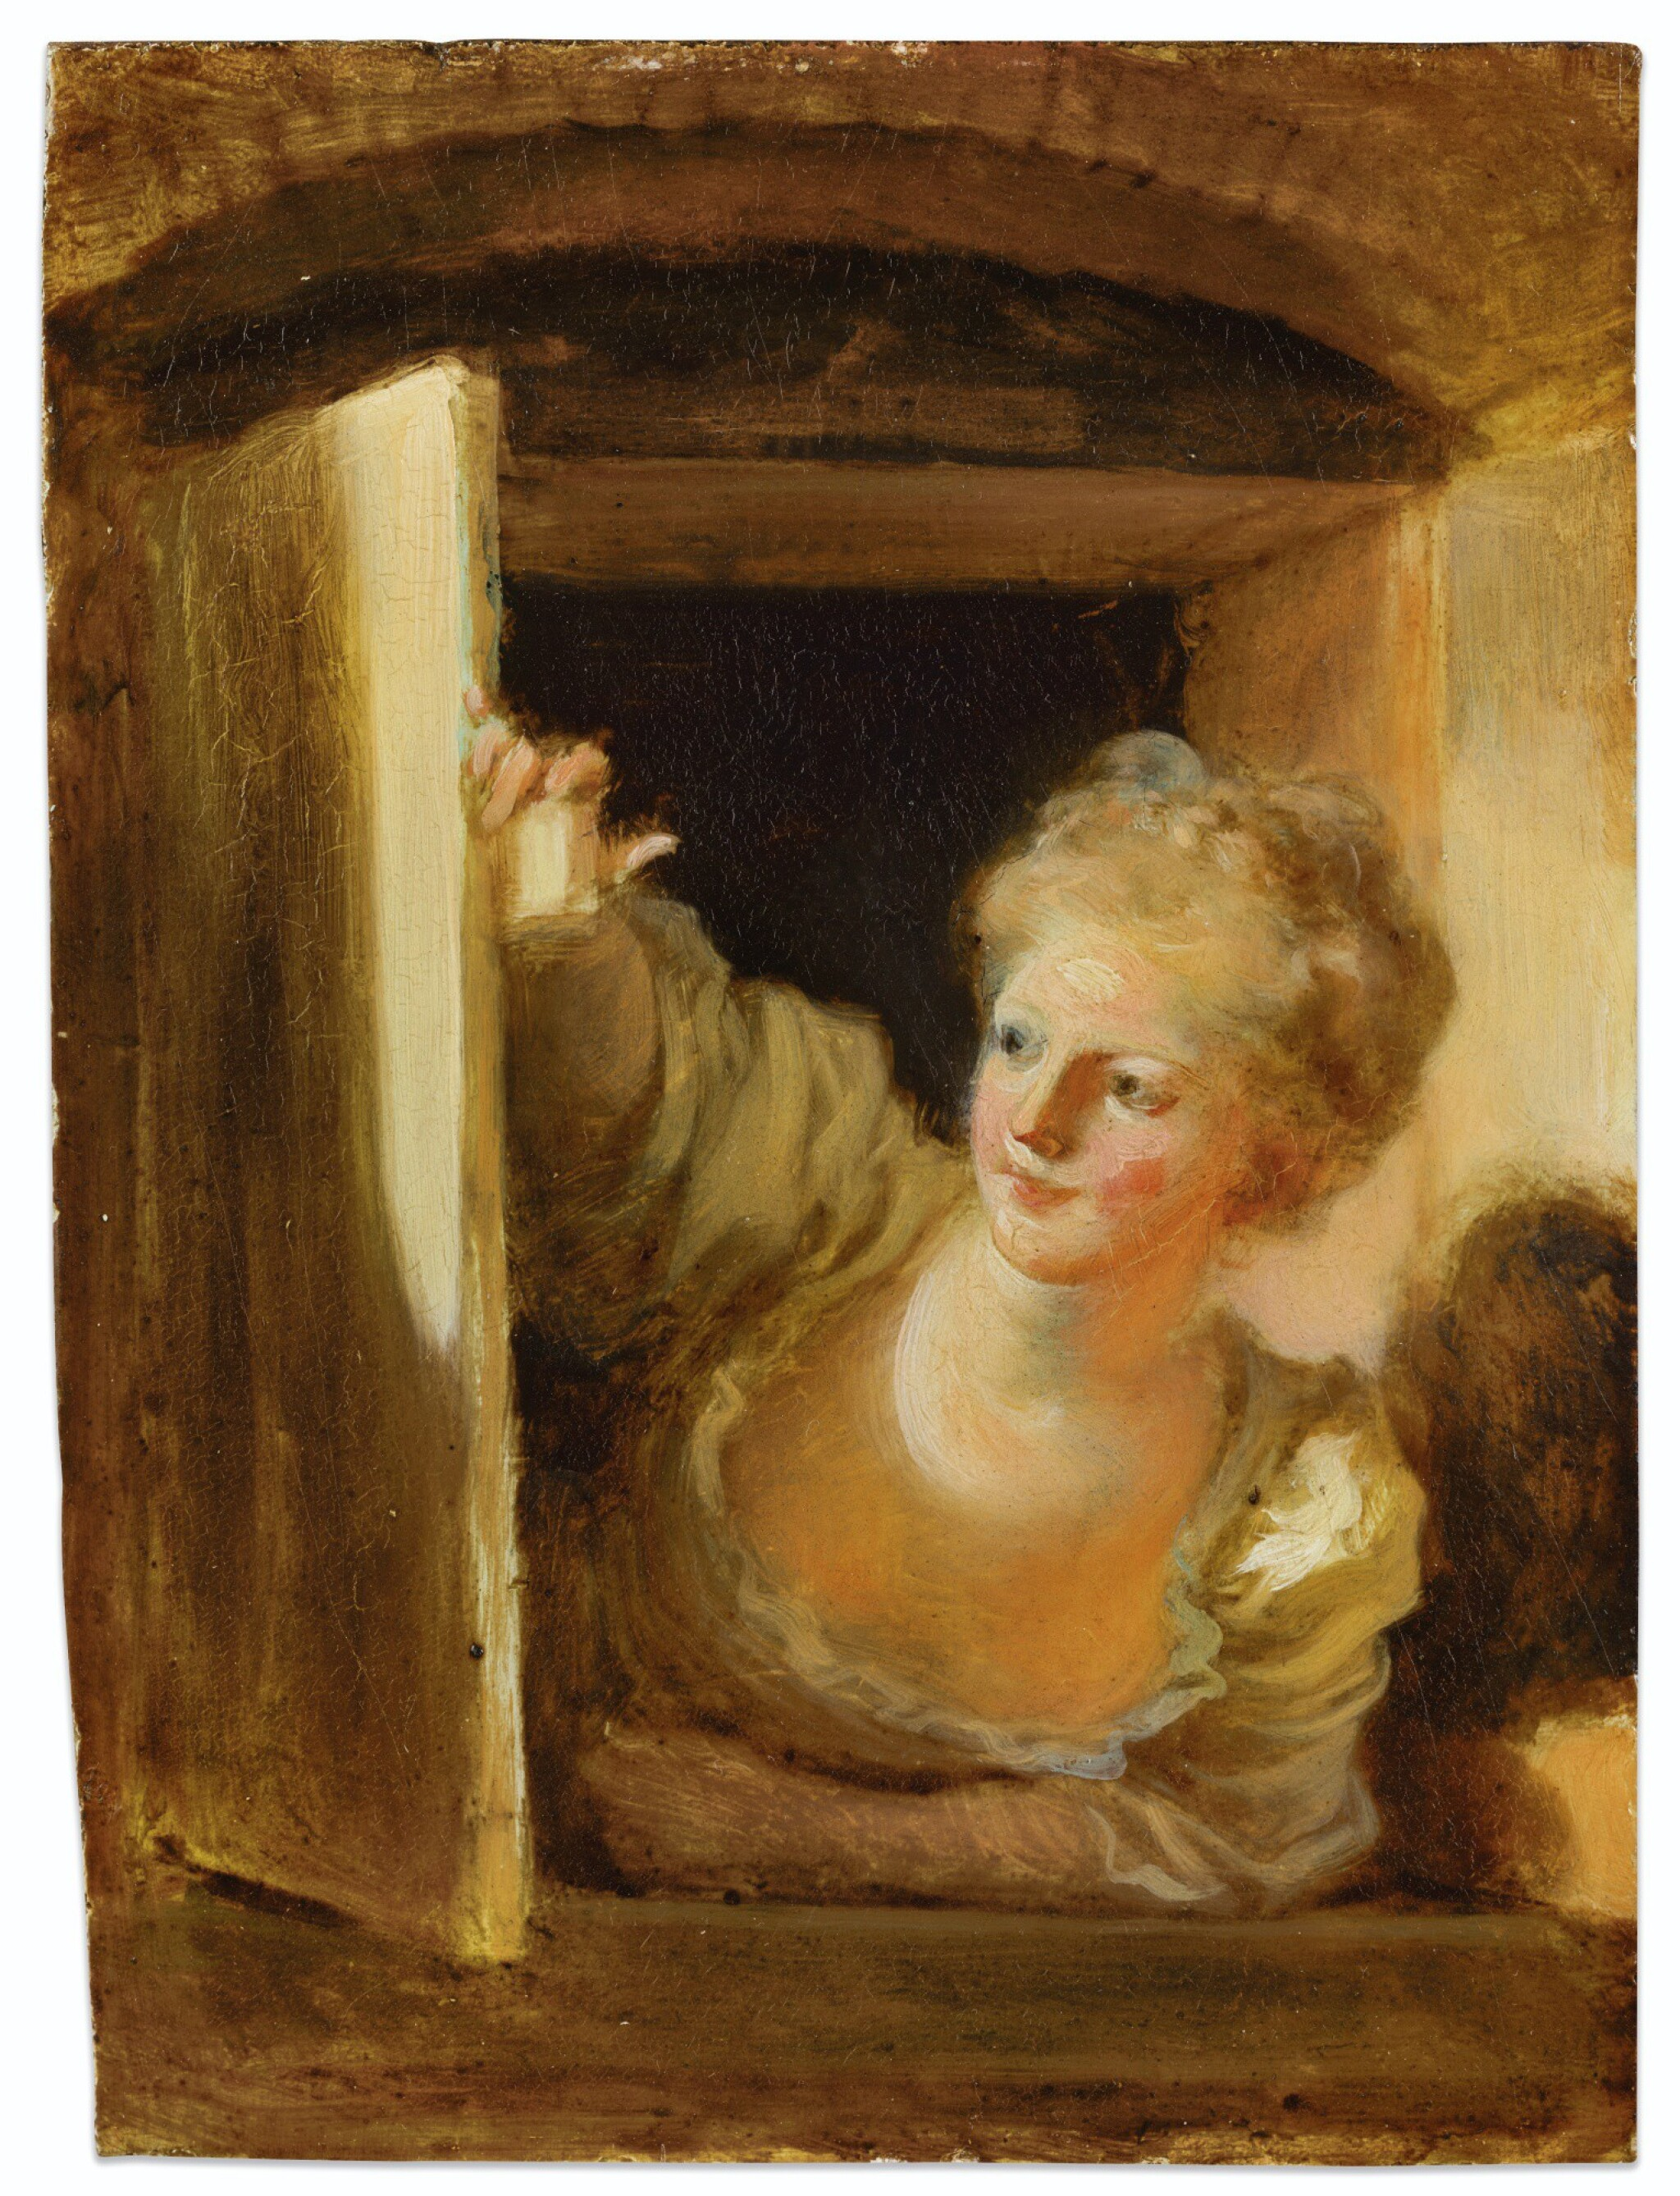 View 1 of Lot 73. JEAN HONORÉ FRAGONARD | A YOUNG WOMAN LEANING OUT OF A WINDOW.